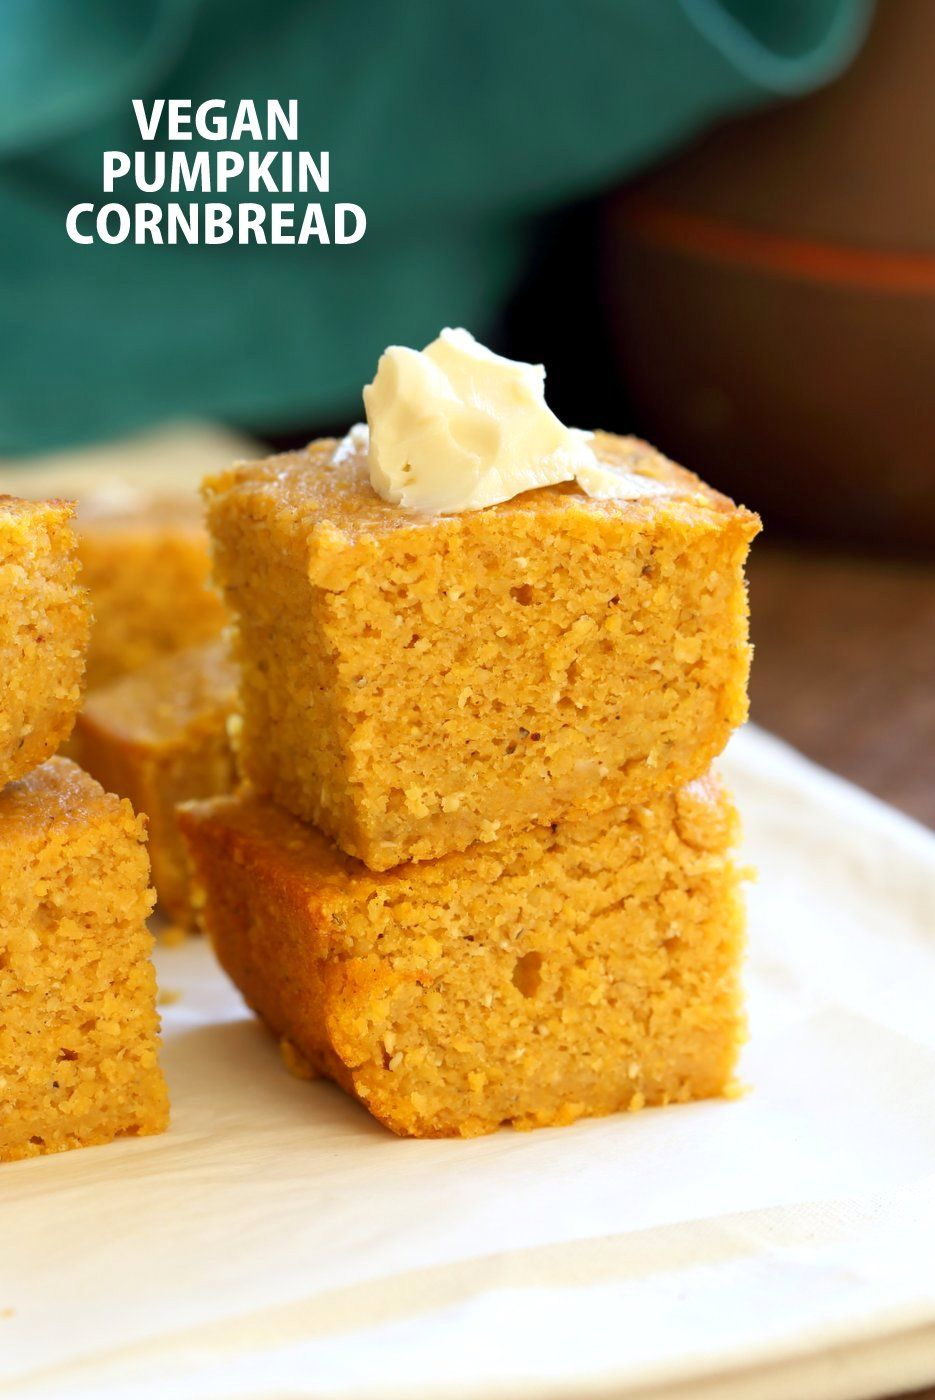 Vegan Pumpkin Cornbread - 1 Bowl 1 Bowl Vegan Pumpkin Corn bread with a few ingredients. Spiced, lightly sweet and great with soups, chilis or on its own with vegan butter and maple syrup or make sandwiches with it. |